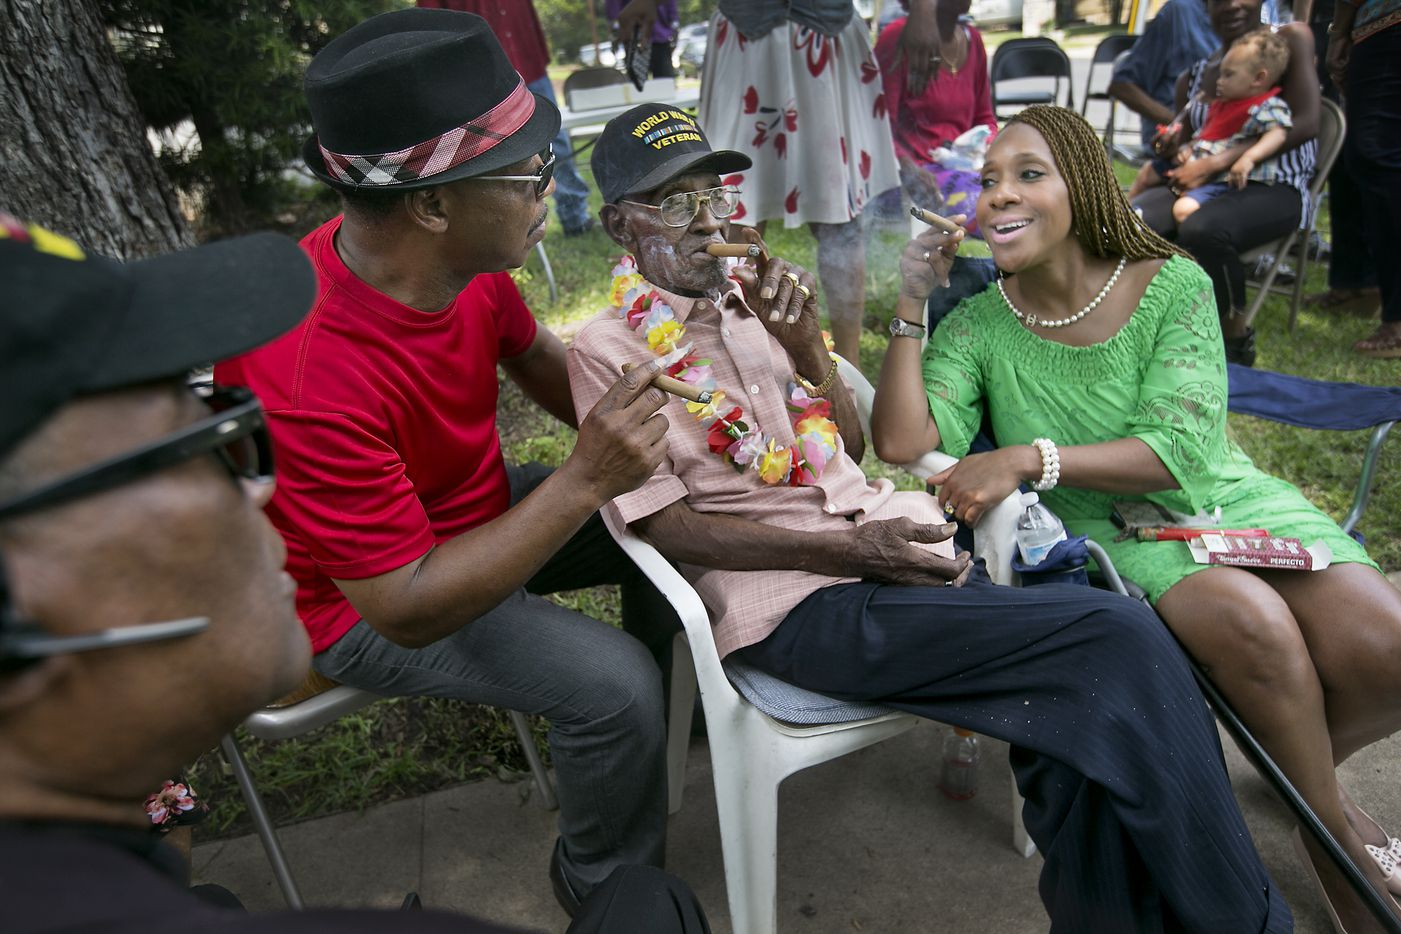 WWII veteran Richard Overton celebrates his 110th birthday in May 2016 with friends and family at his home in Austin.  He smokes a cigar with caregiver Martin Wilford (left) and good friend  Donna Shorts. Pastor Carl Jarman (far left) sits nearby.